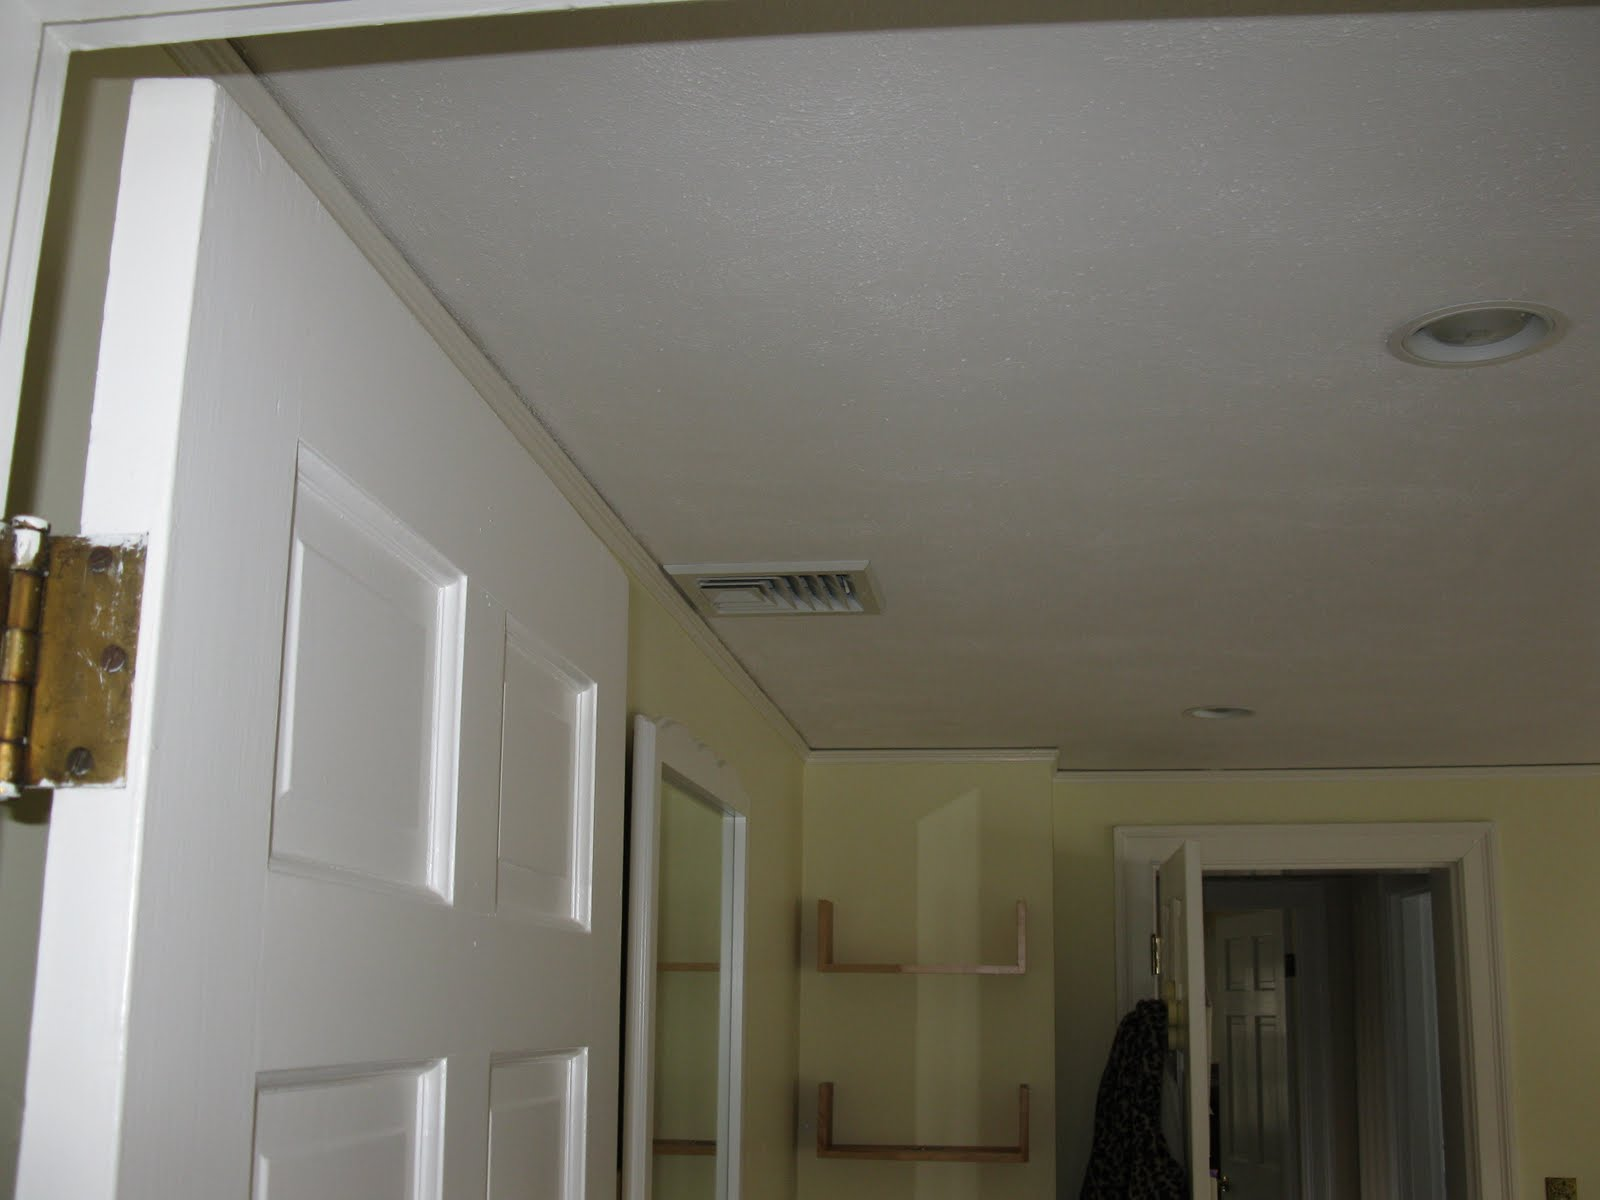 How to cut base molding around wall vent - Below Are The Two Air Trucks That Feed Each Bedroom The Upper Right Is The Corner Vent And